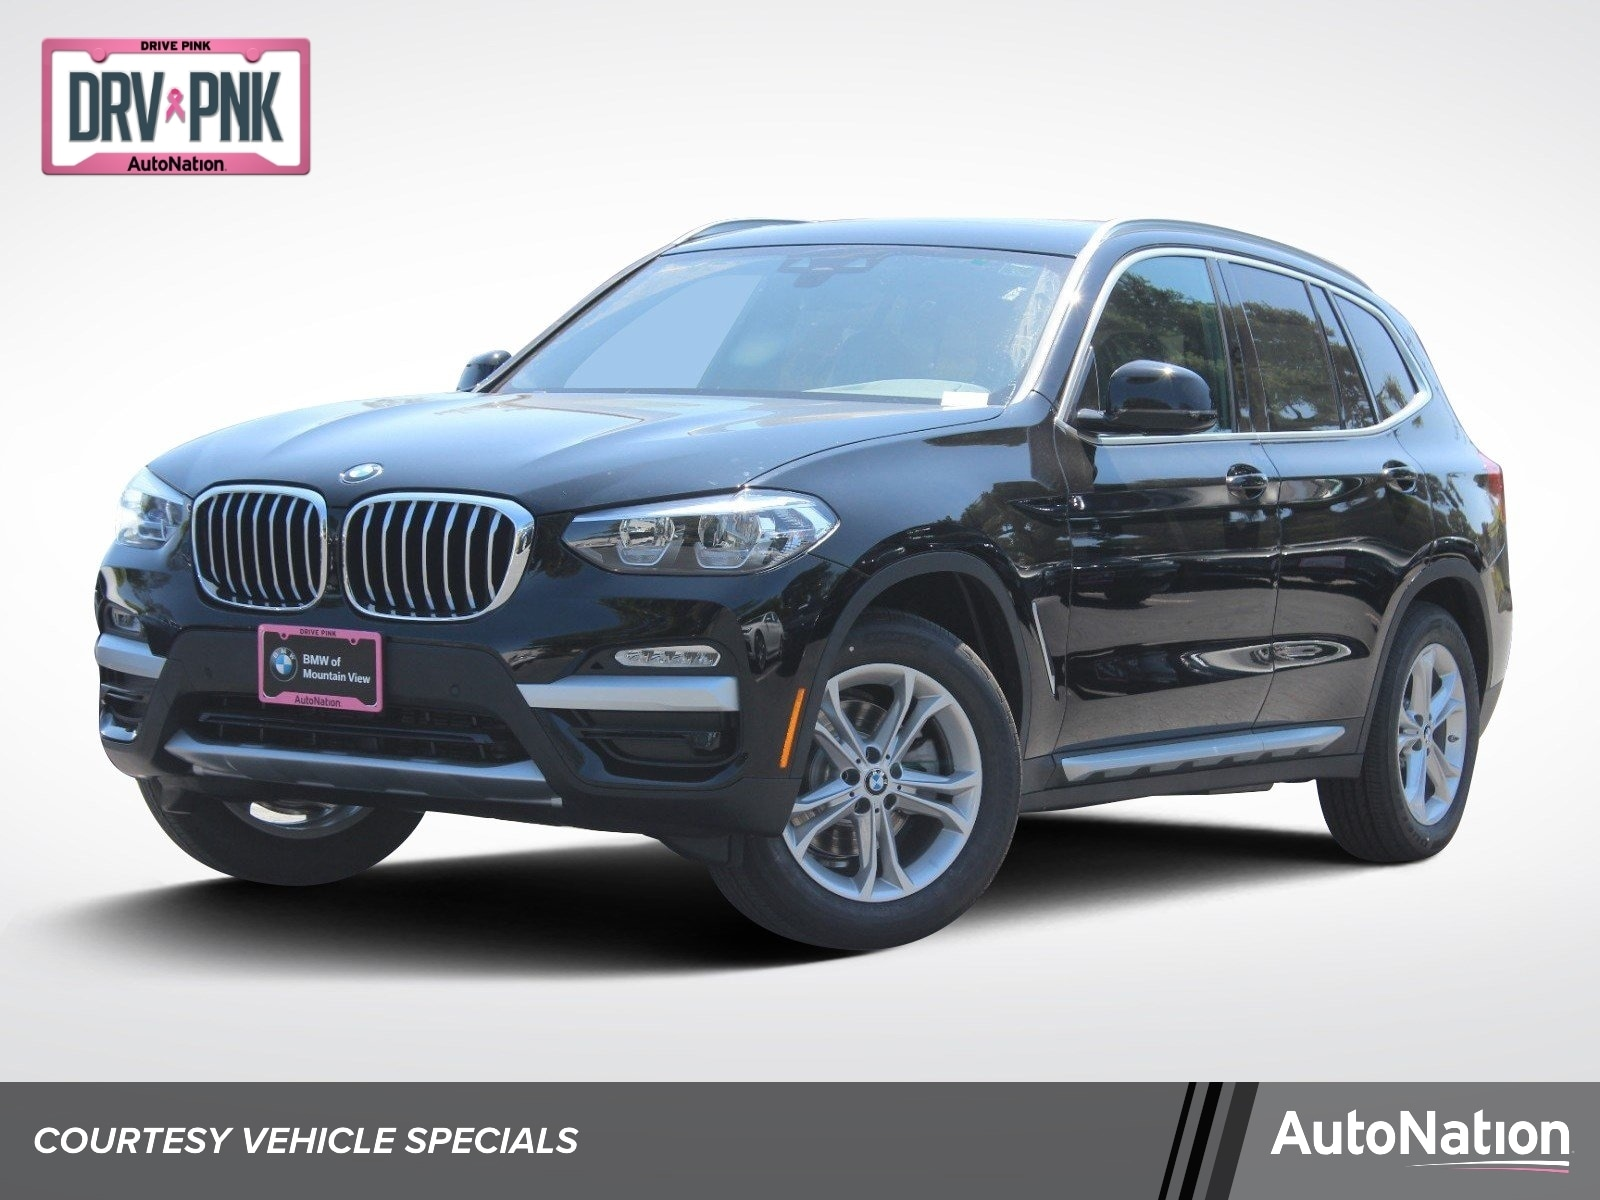 Bmw Mountain View >> 5uxtr7c59klr48447 2019 Bmw X3 For Sale In Mountain View Ca